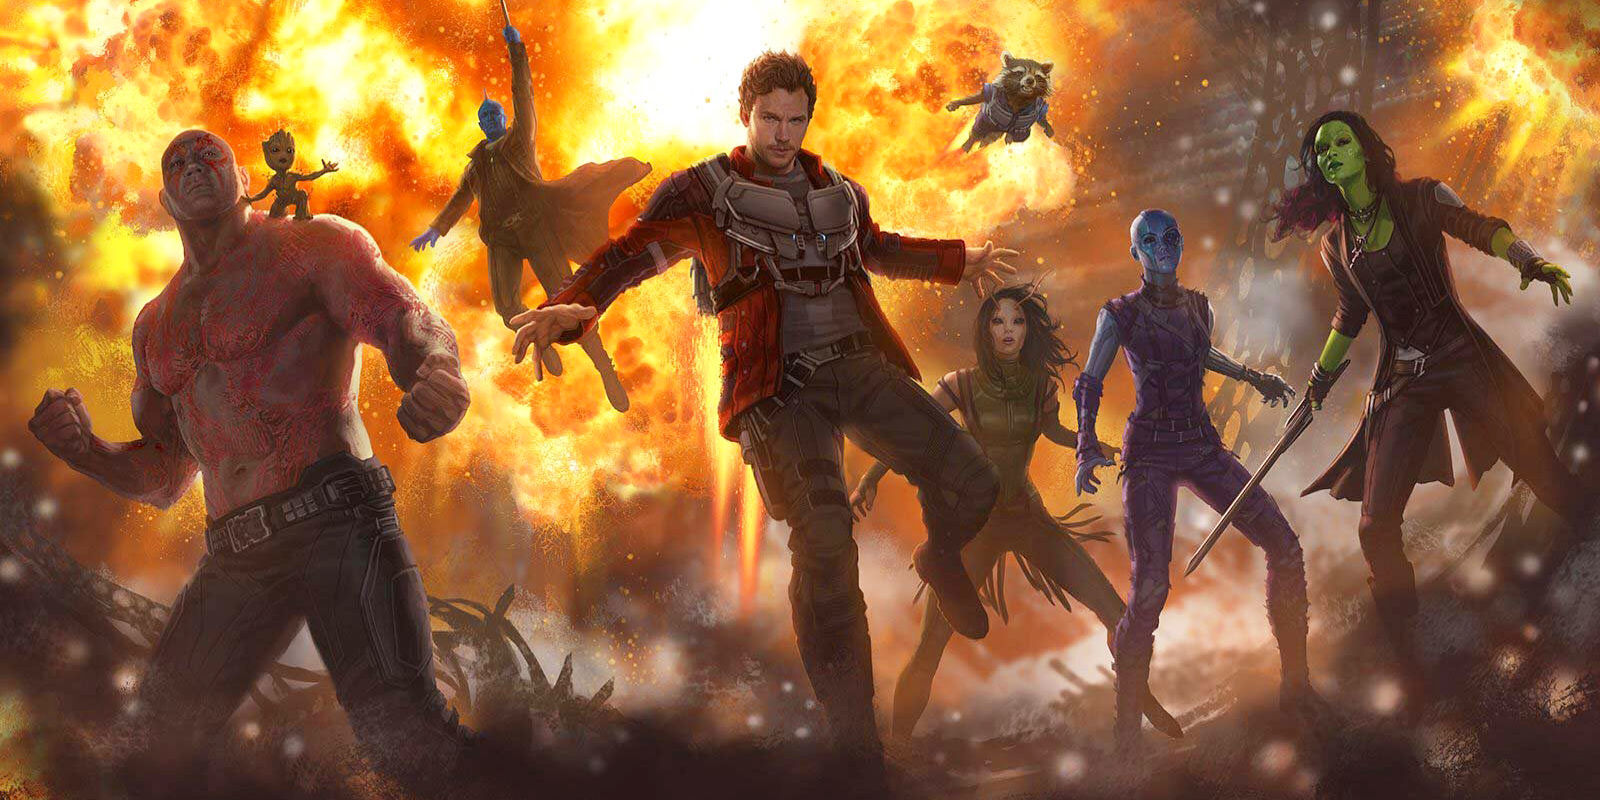 Guardians of the Galaxy Vol. 2 Concept Art